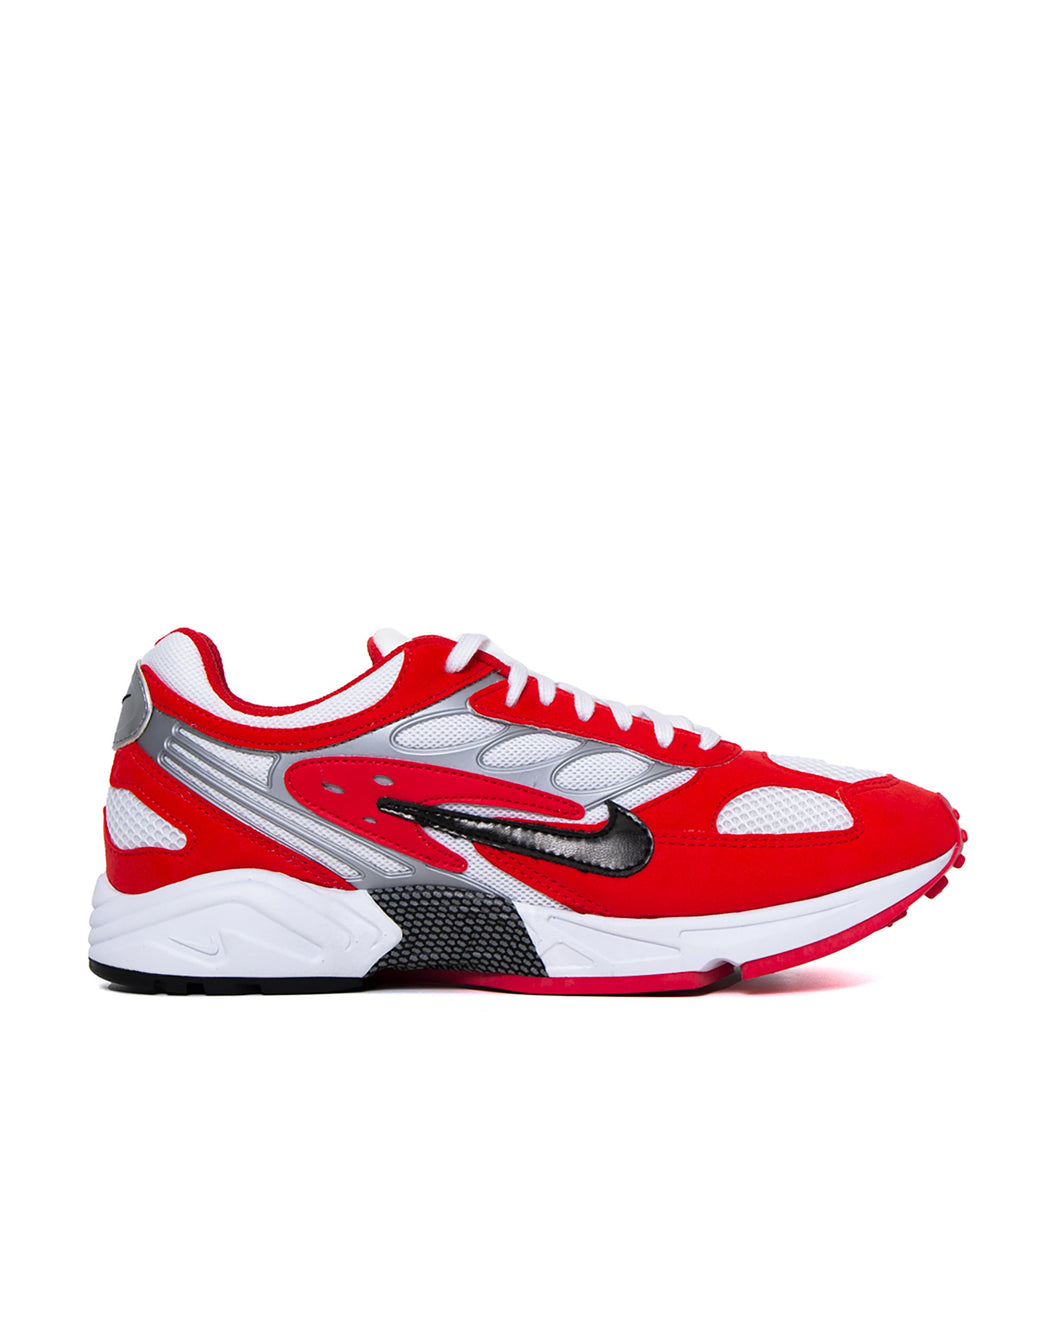 Nike Air Ghost Racer Track Red/Black-White-Metallic Silver